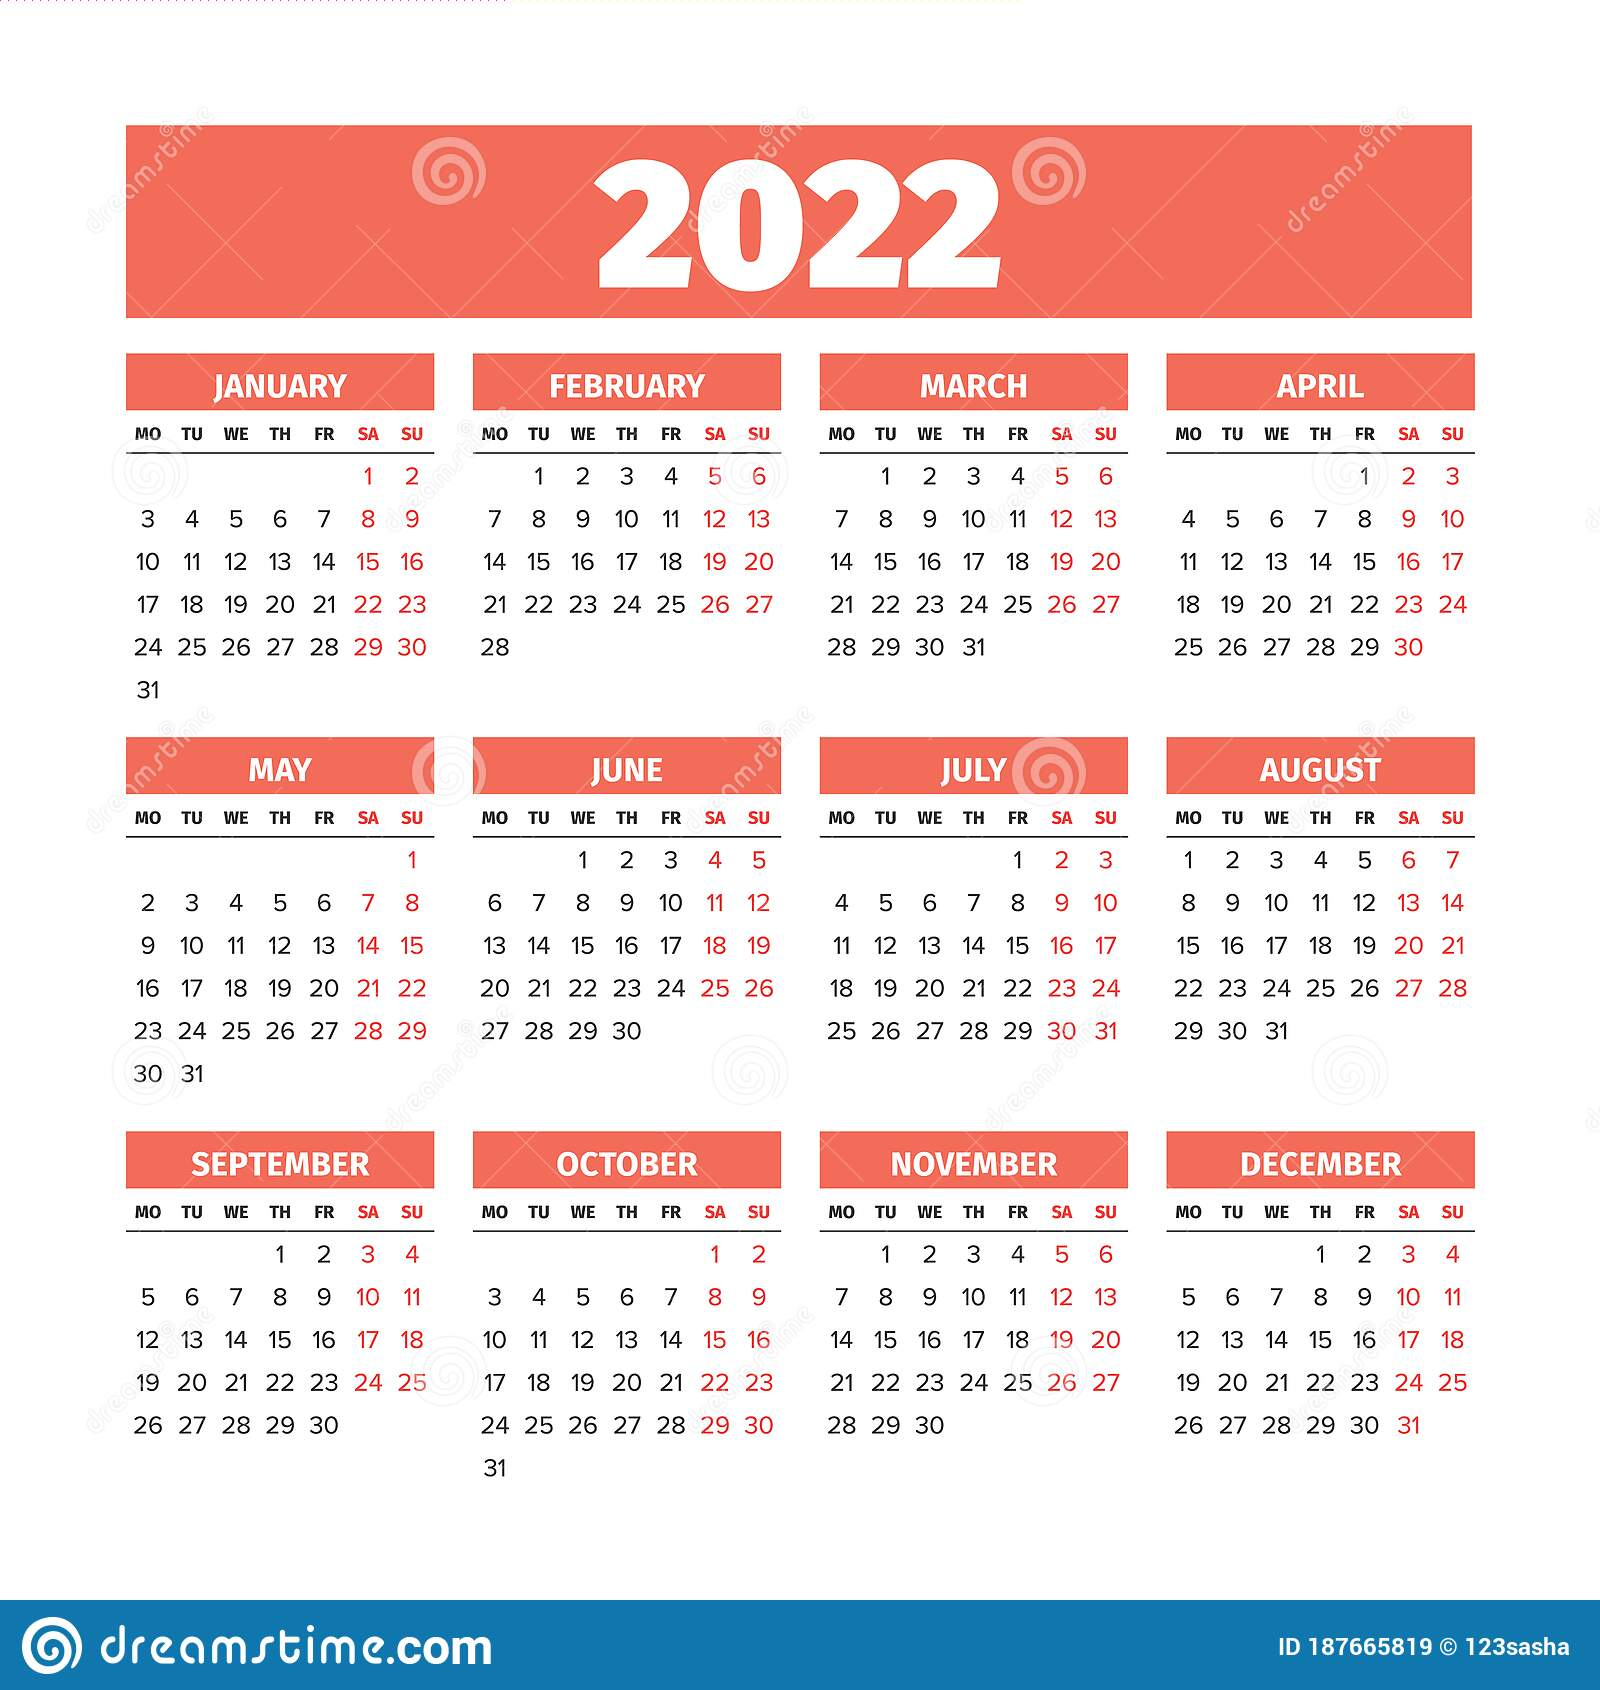 Calendar Weeks 2022.2022 Calendar With The Weeks Start On Monday Stock Vector Illustration Of Date Number 187665819